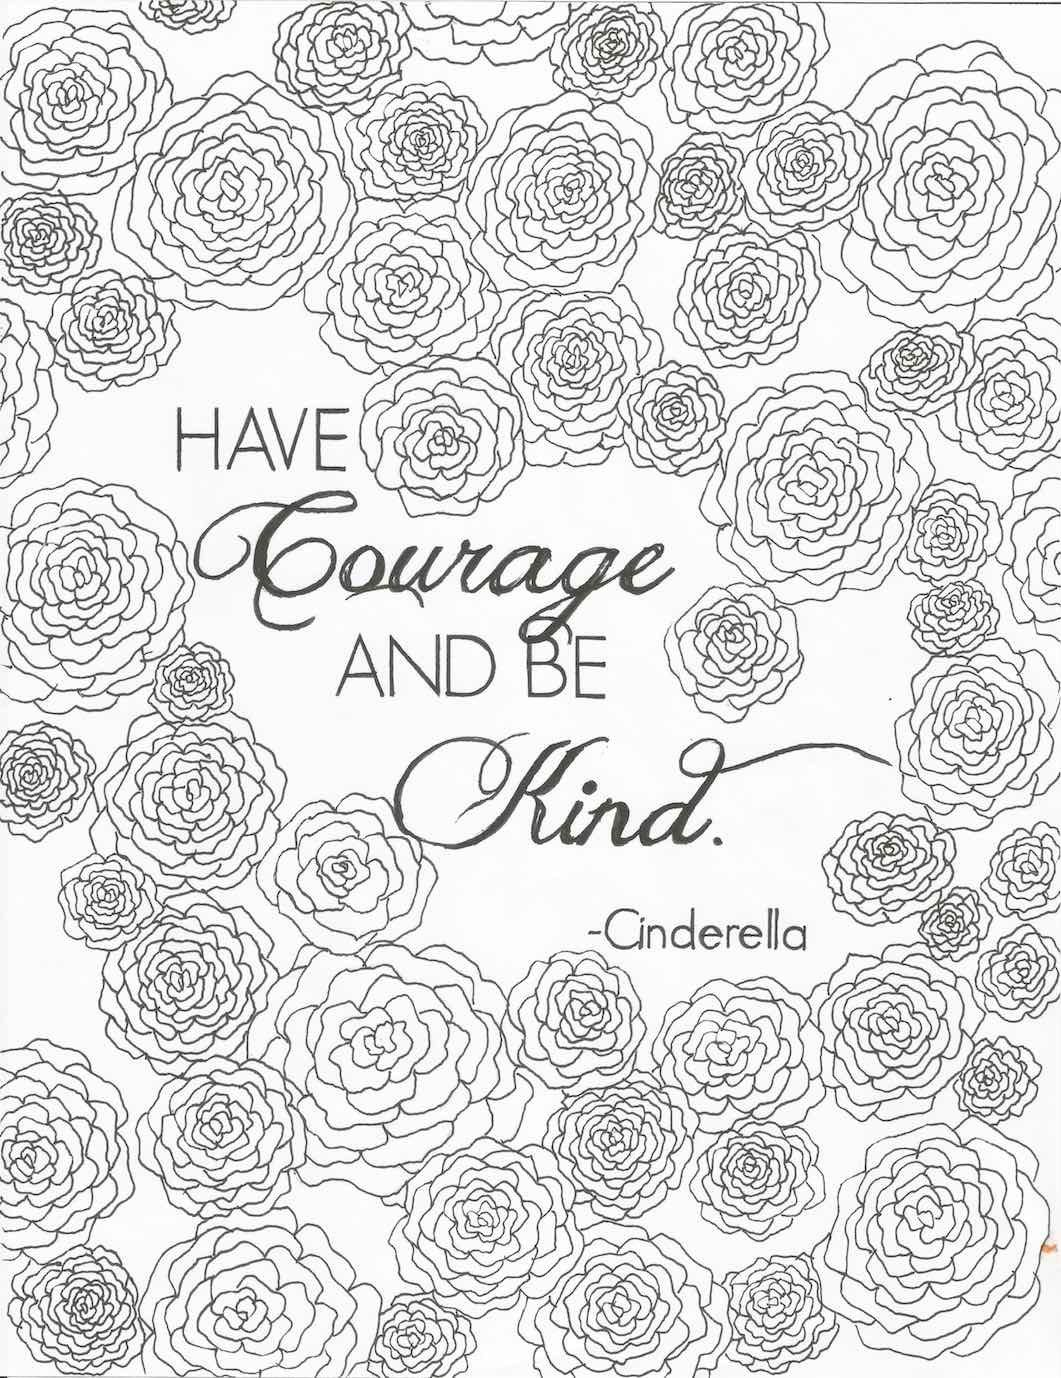 Have courage and be kind quote from cinderella digital print adult coloring page